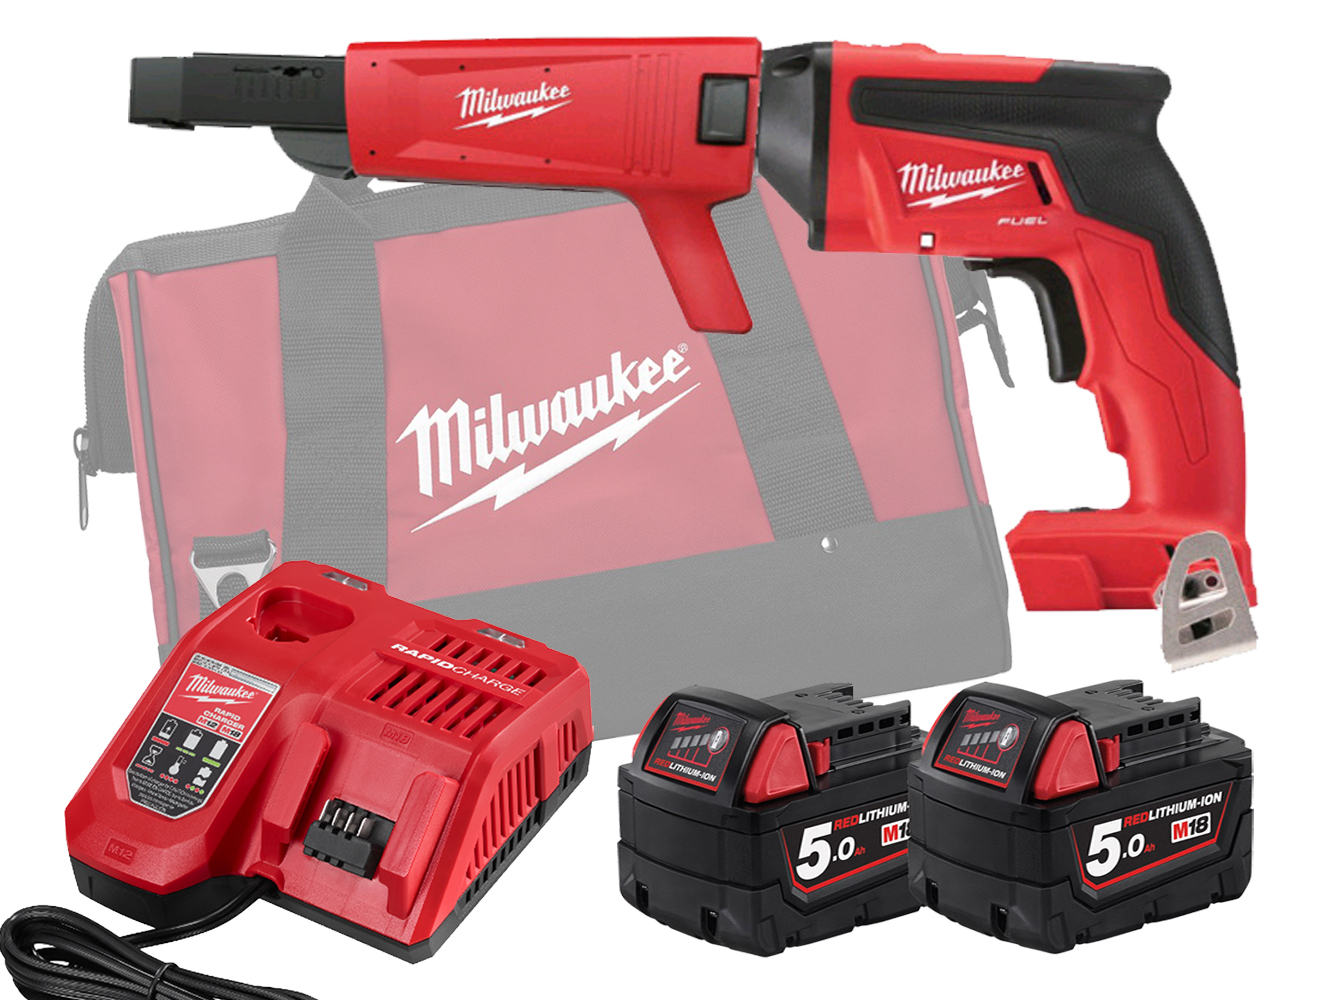 Milwaukee M18FSGC 18V Fuel Screw Gun With Collated Attachment - 5.0Ah Pack